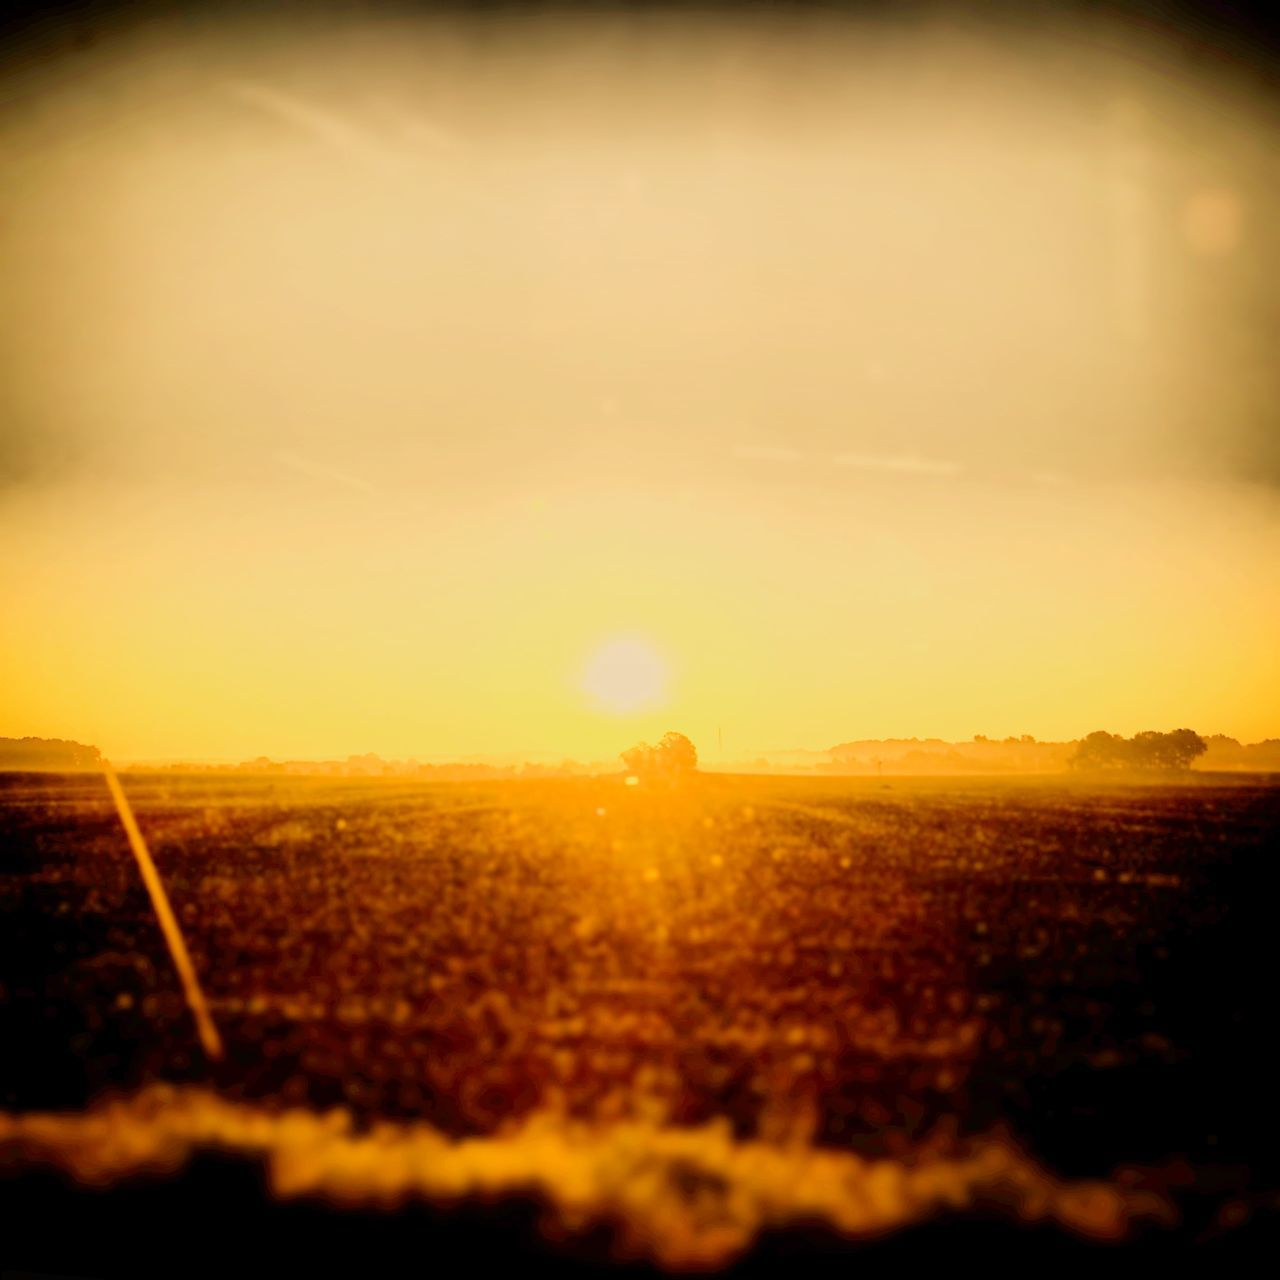 Sun Landscape Sky Orange Color Field Nature Sunset Sunlight Outdoors Beauty In Nature Insta Sonnenaufgang Seht Euch Meine Instaseite SopKlein An Picks Of My Life